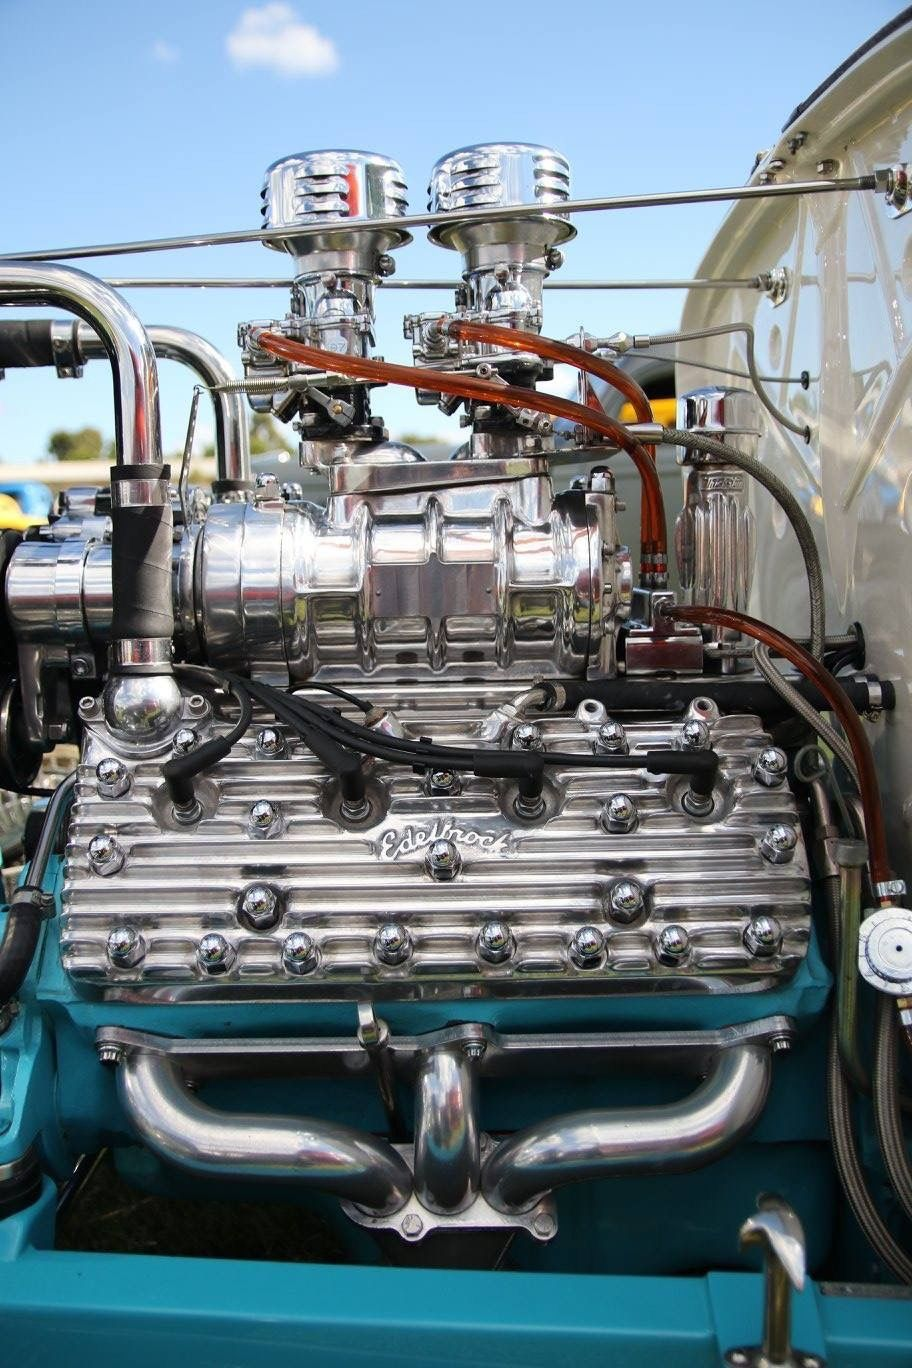 Blown Flathead 32 Ford Roadster Hot Rod Trucks Drag Racing Cars